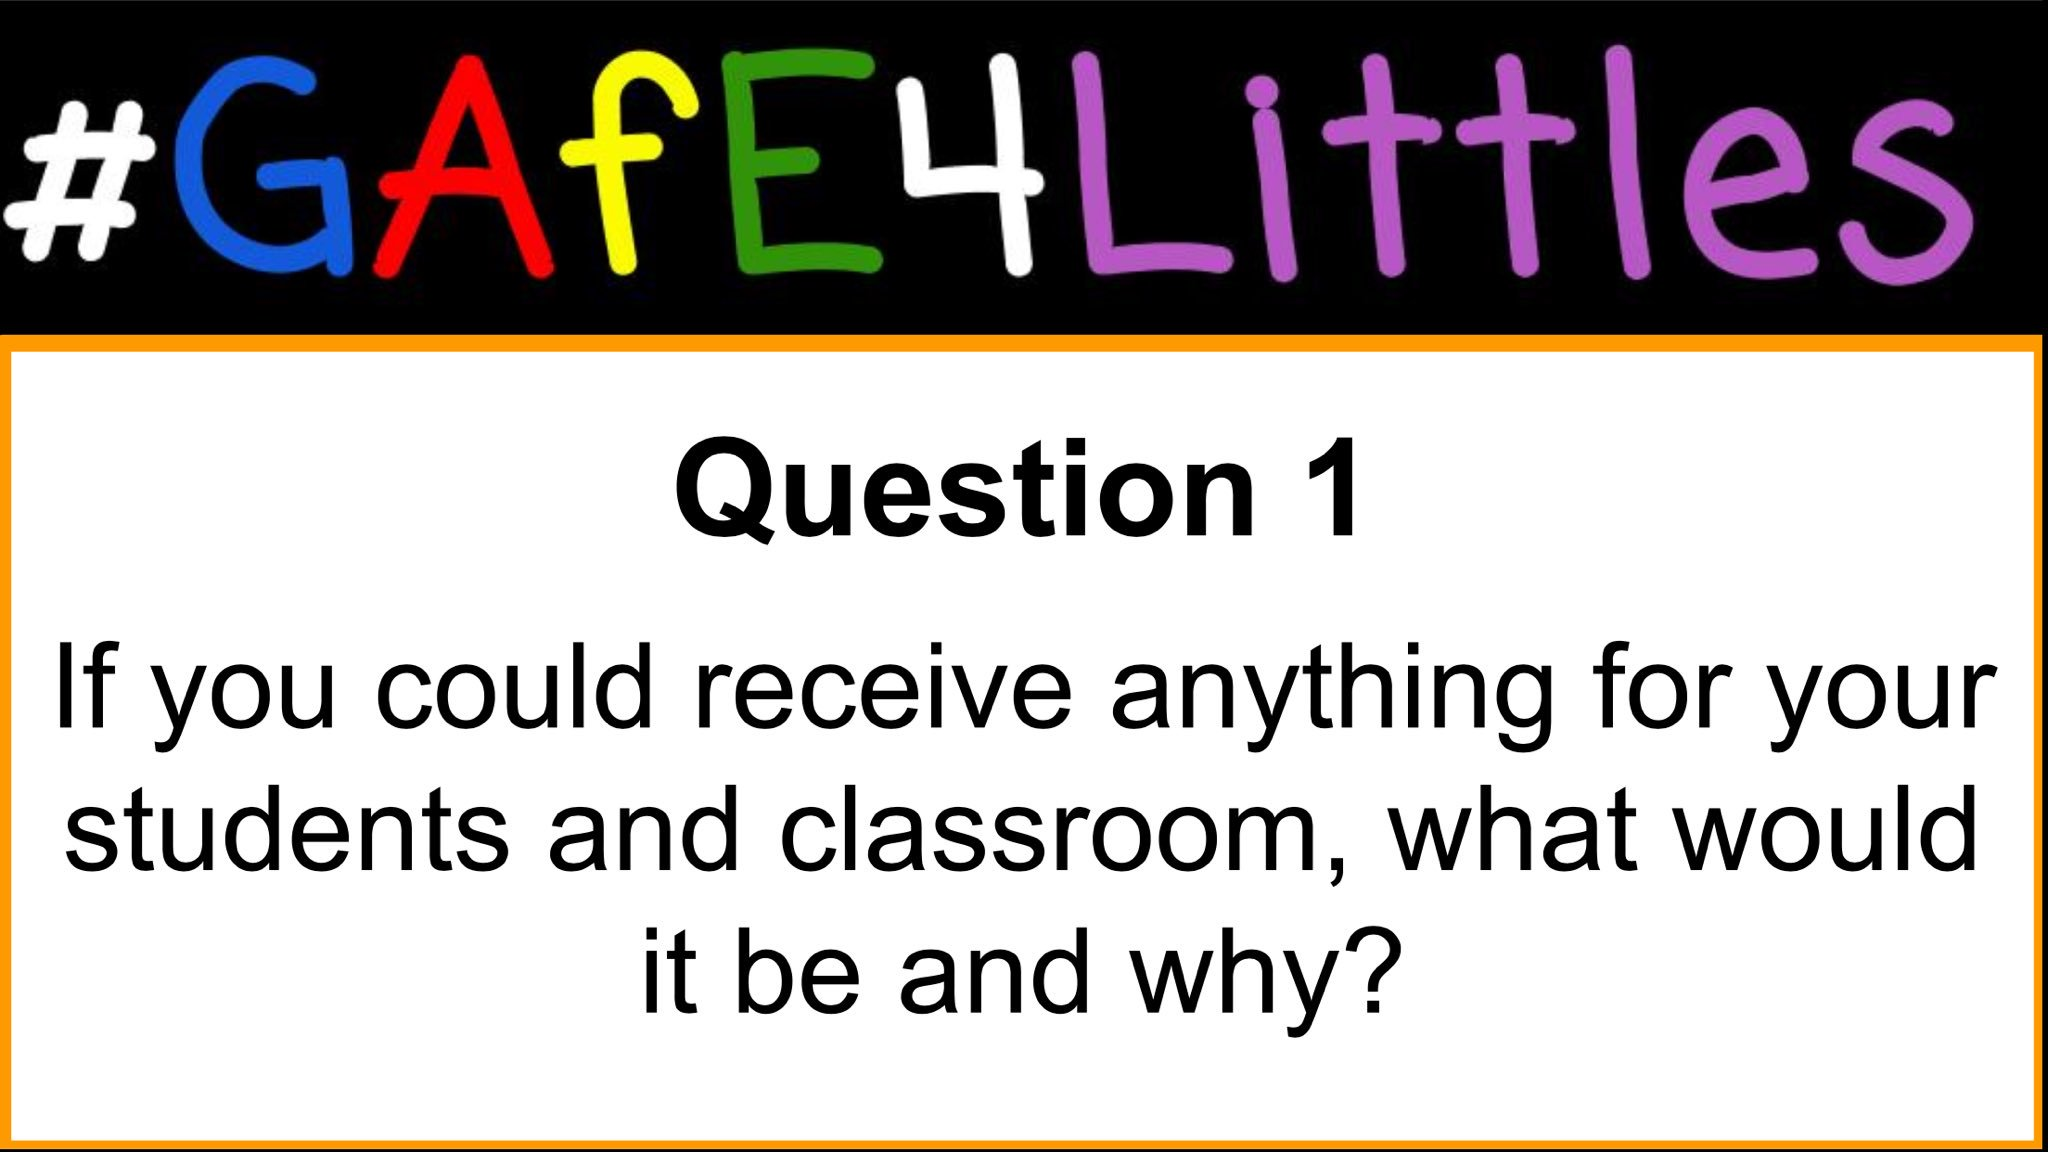 Q1: If you could receive anything for your students and classroom, what would it be and why? #gafe4littles https://t.co/ctor6naZEE